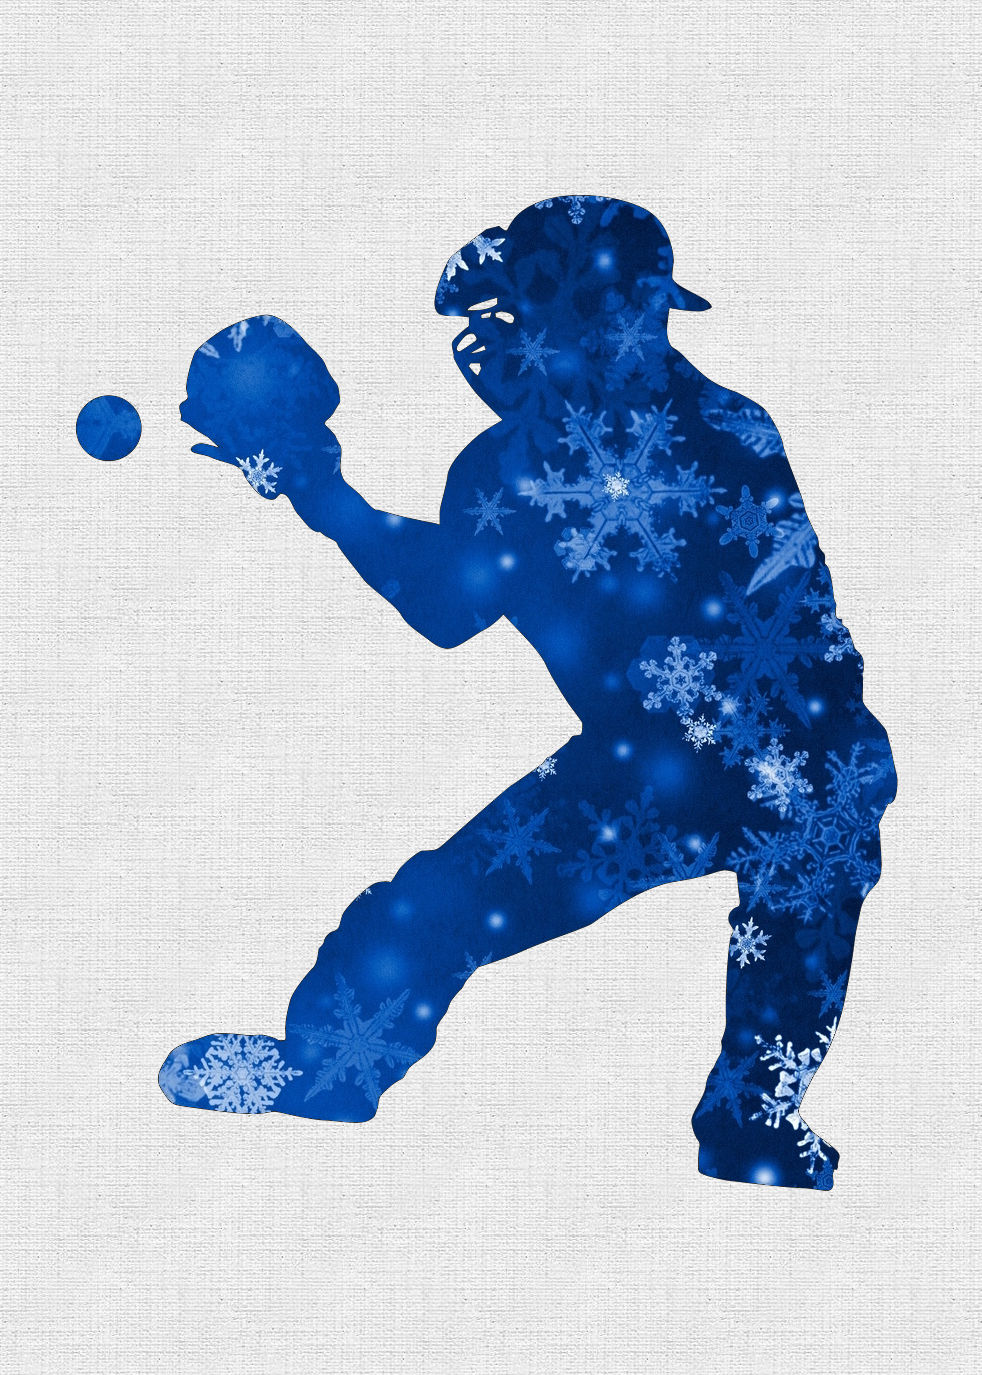 Personalized Snowflakes Silhouette Baseball Catcher Holiday Cards<br>5 PACK MINIMUM!